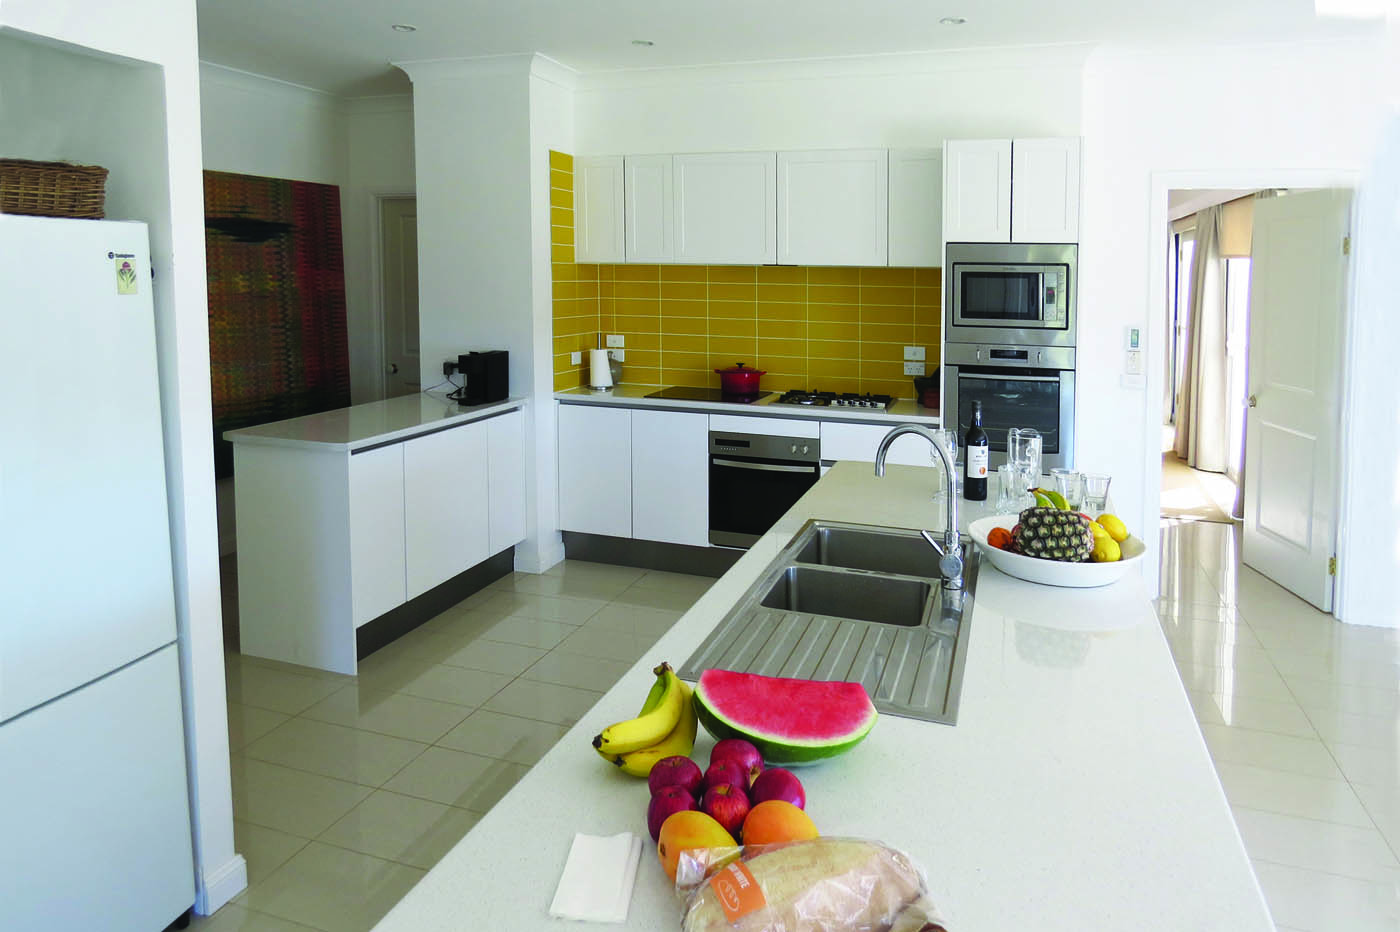 B & B kitchen in Paal kit home